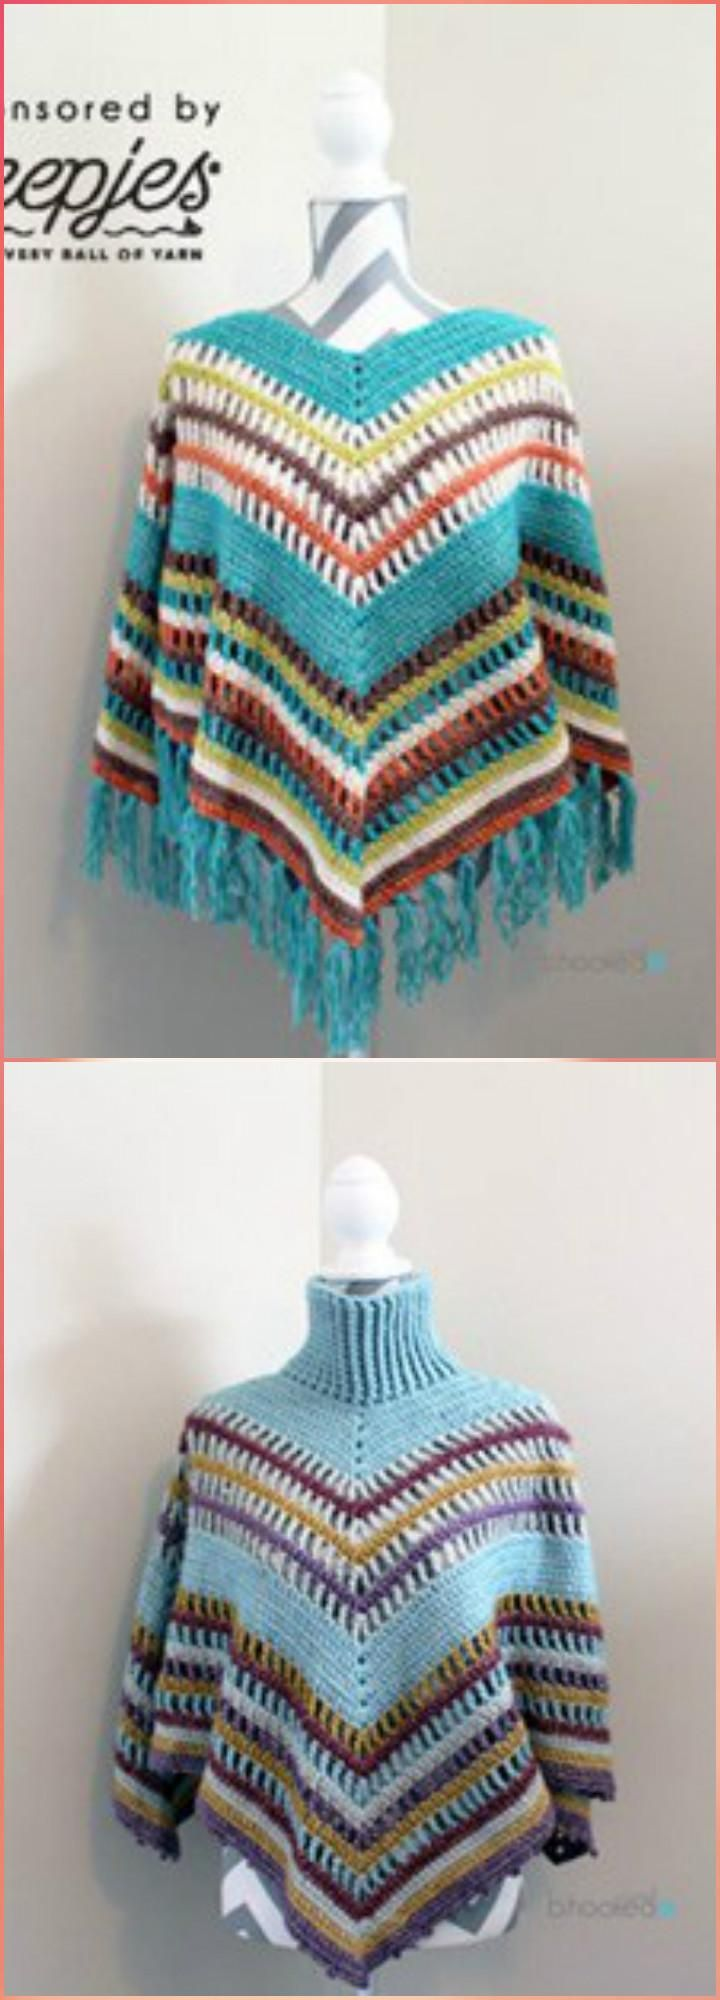 50 Free Crochet Poncho Patterns for All - Page 8 of 9 | Häkeln